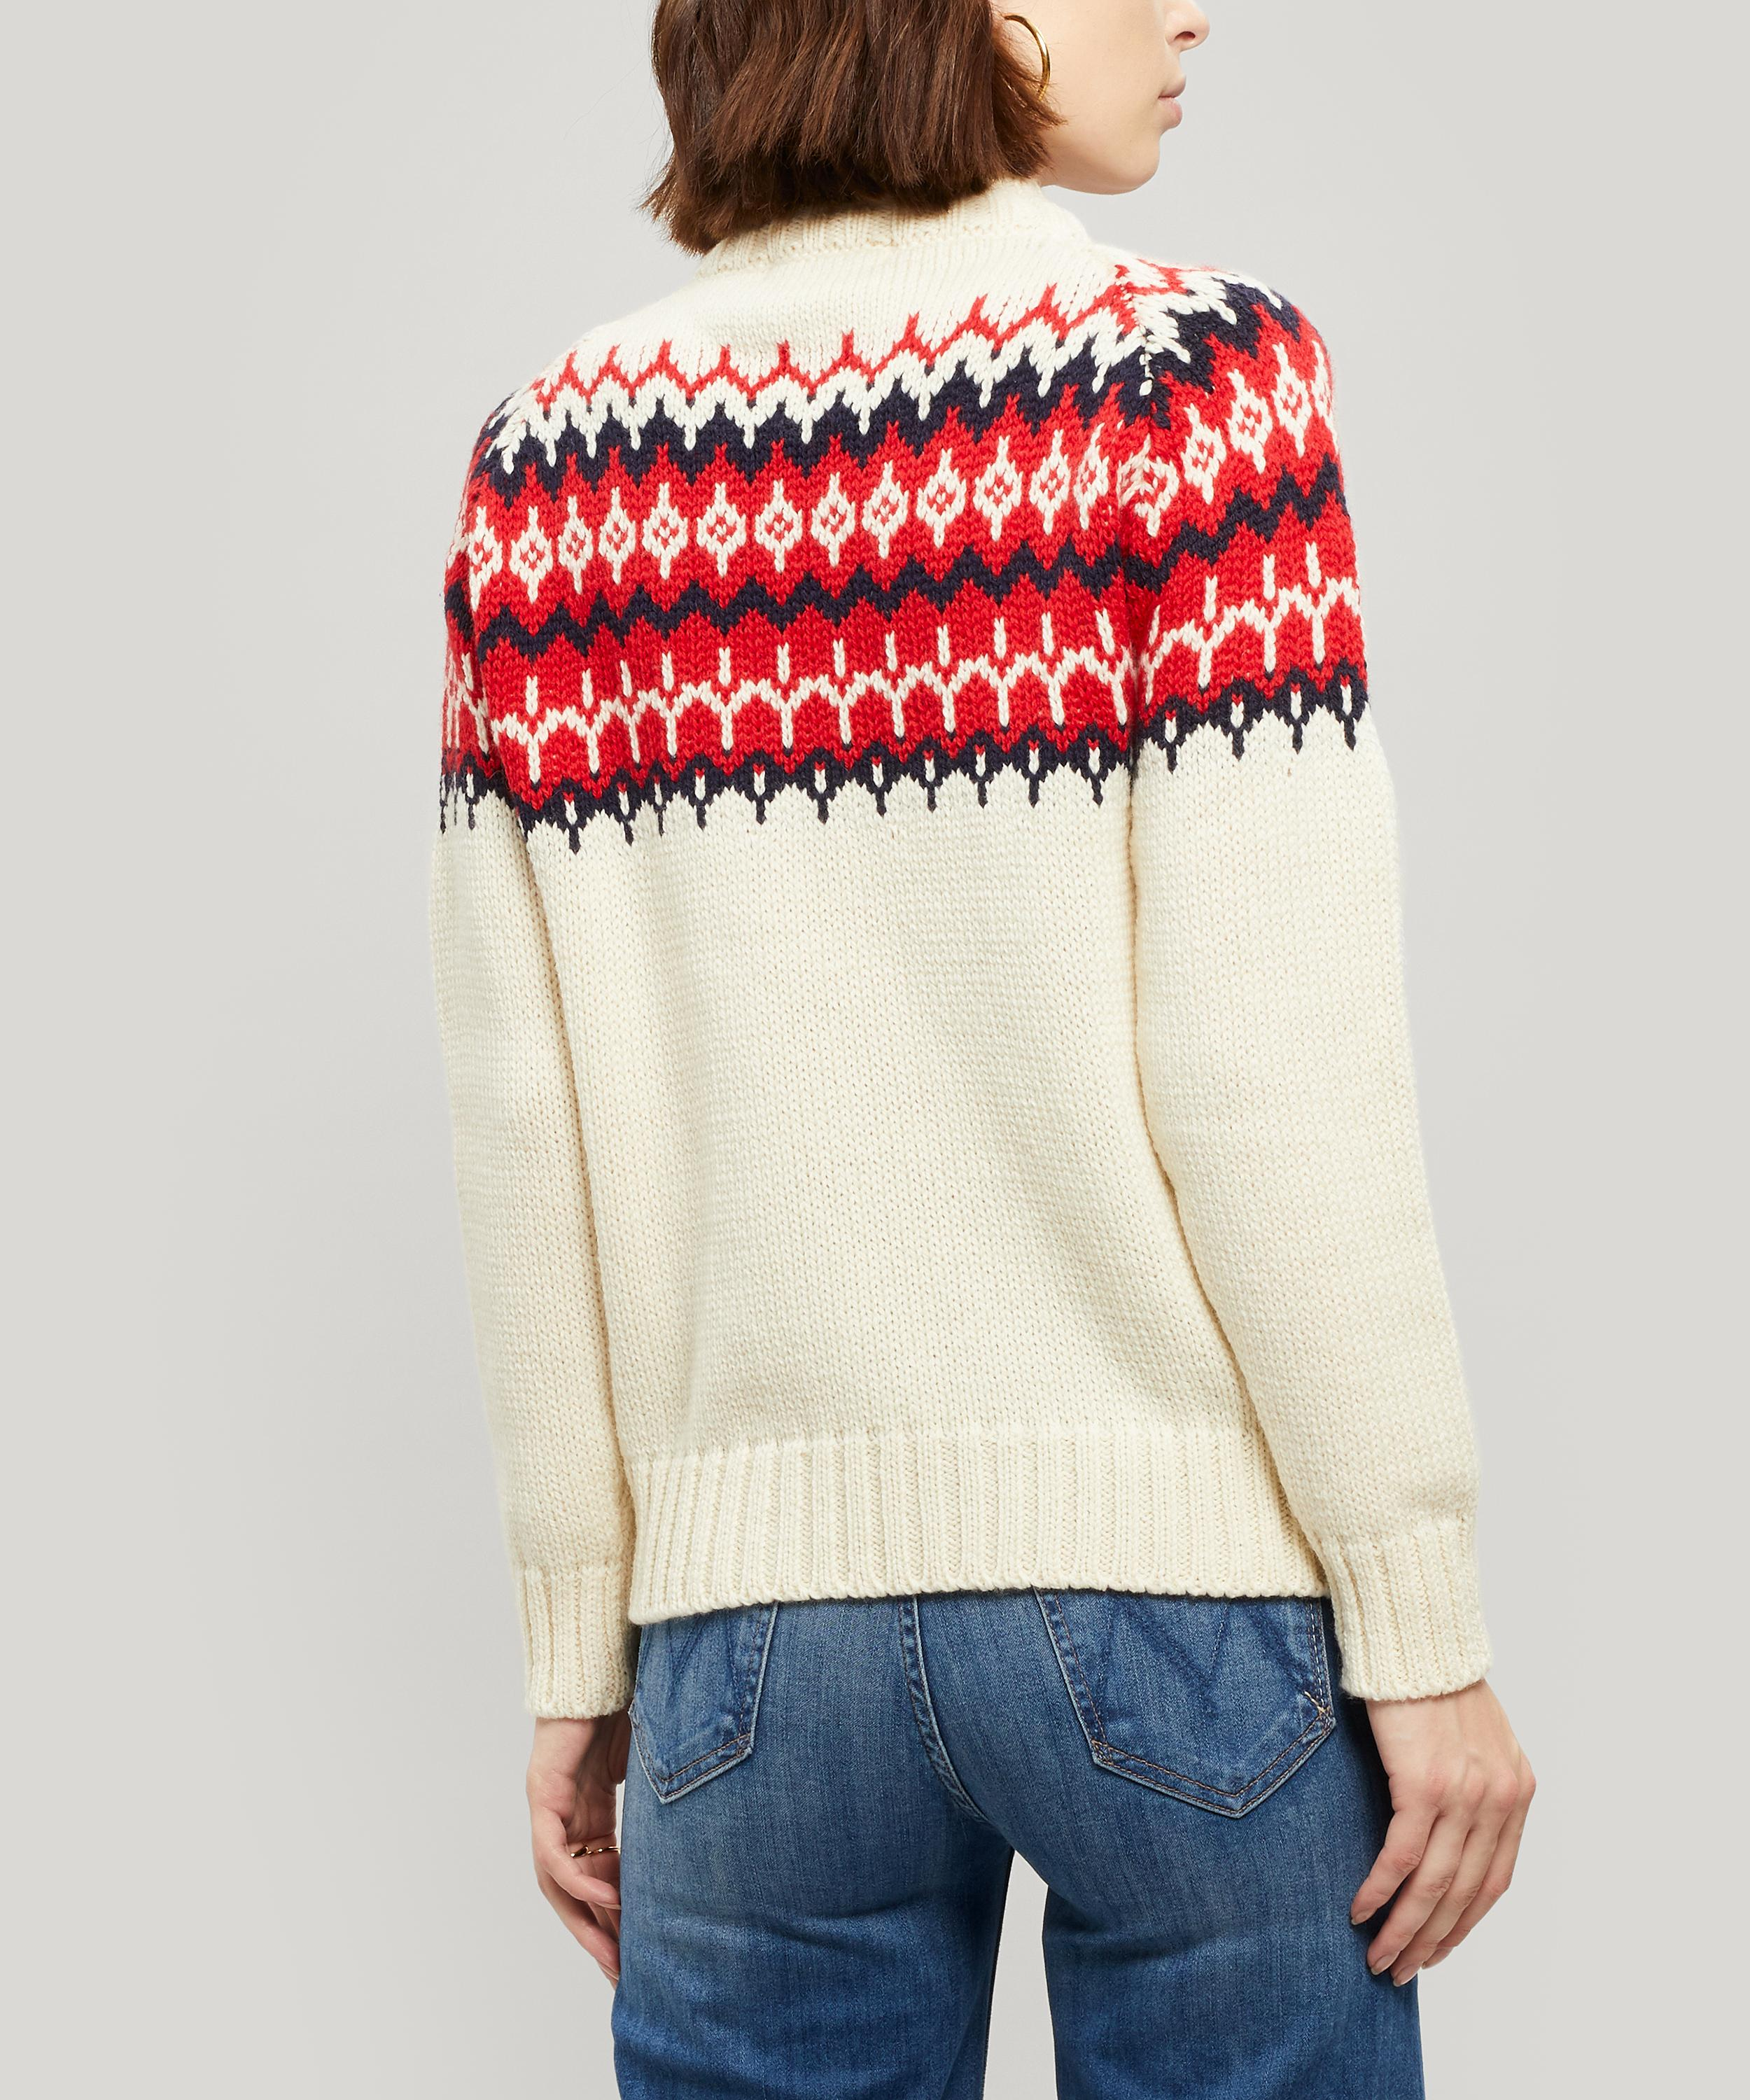 Daughter Bansha Fair Isle Wool Jumper back view.jpg